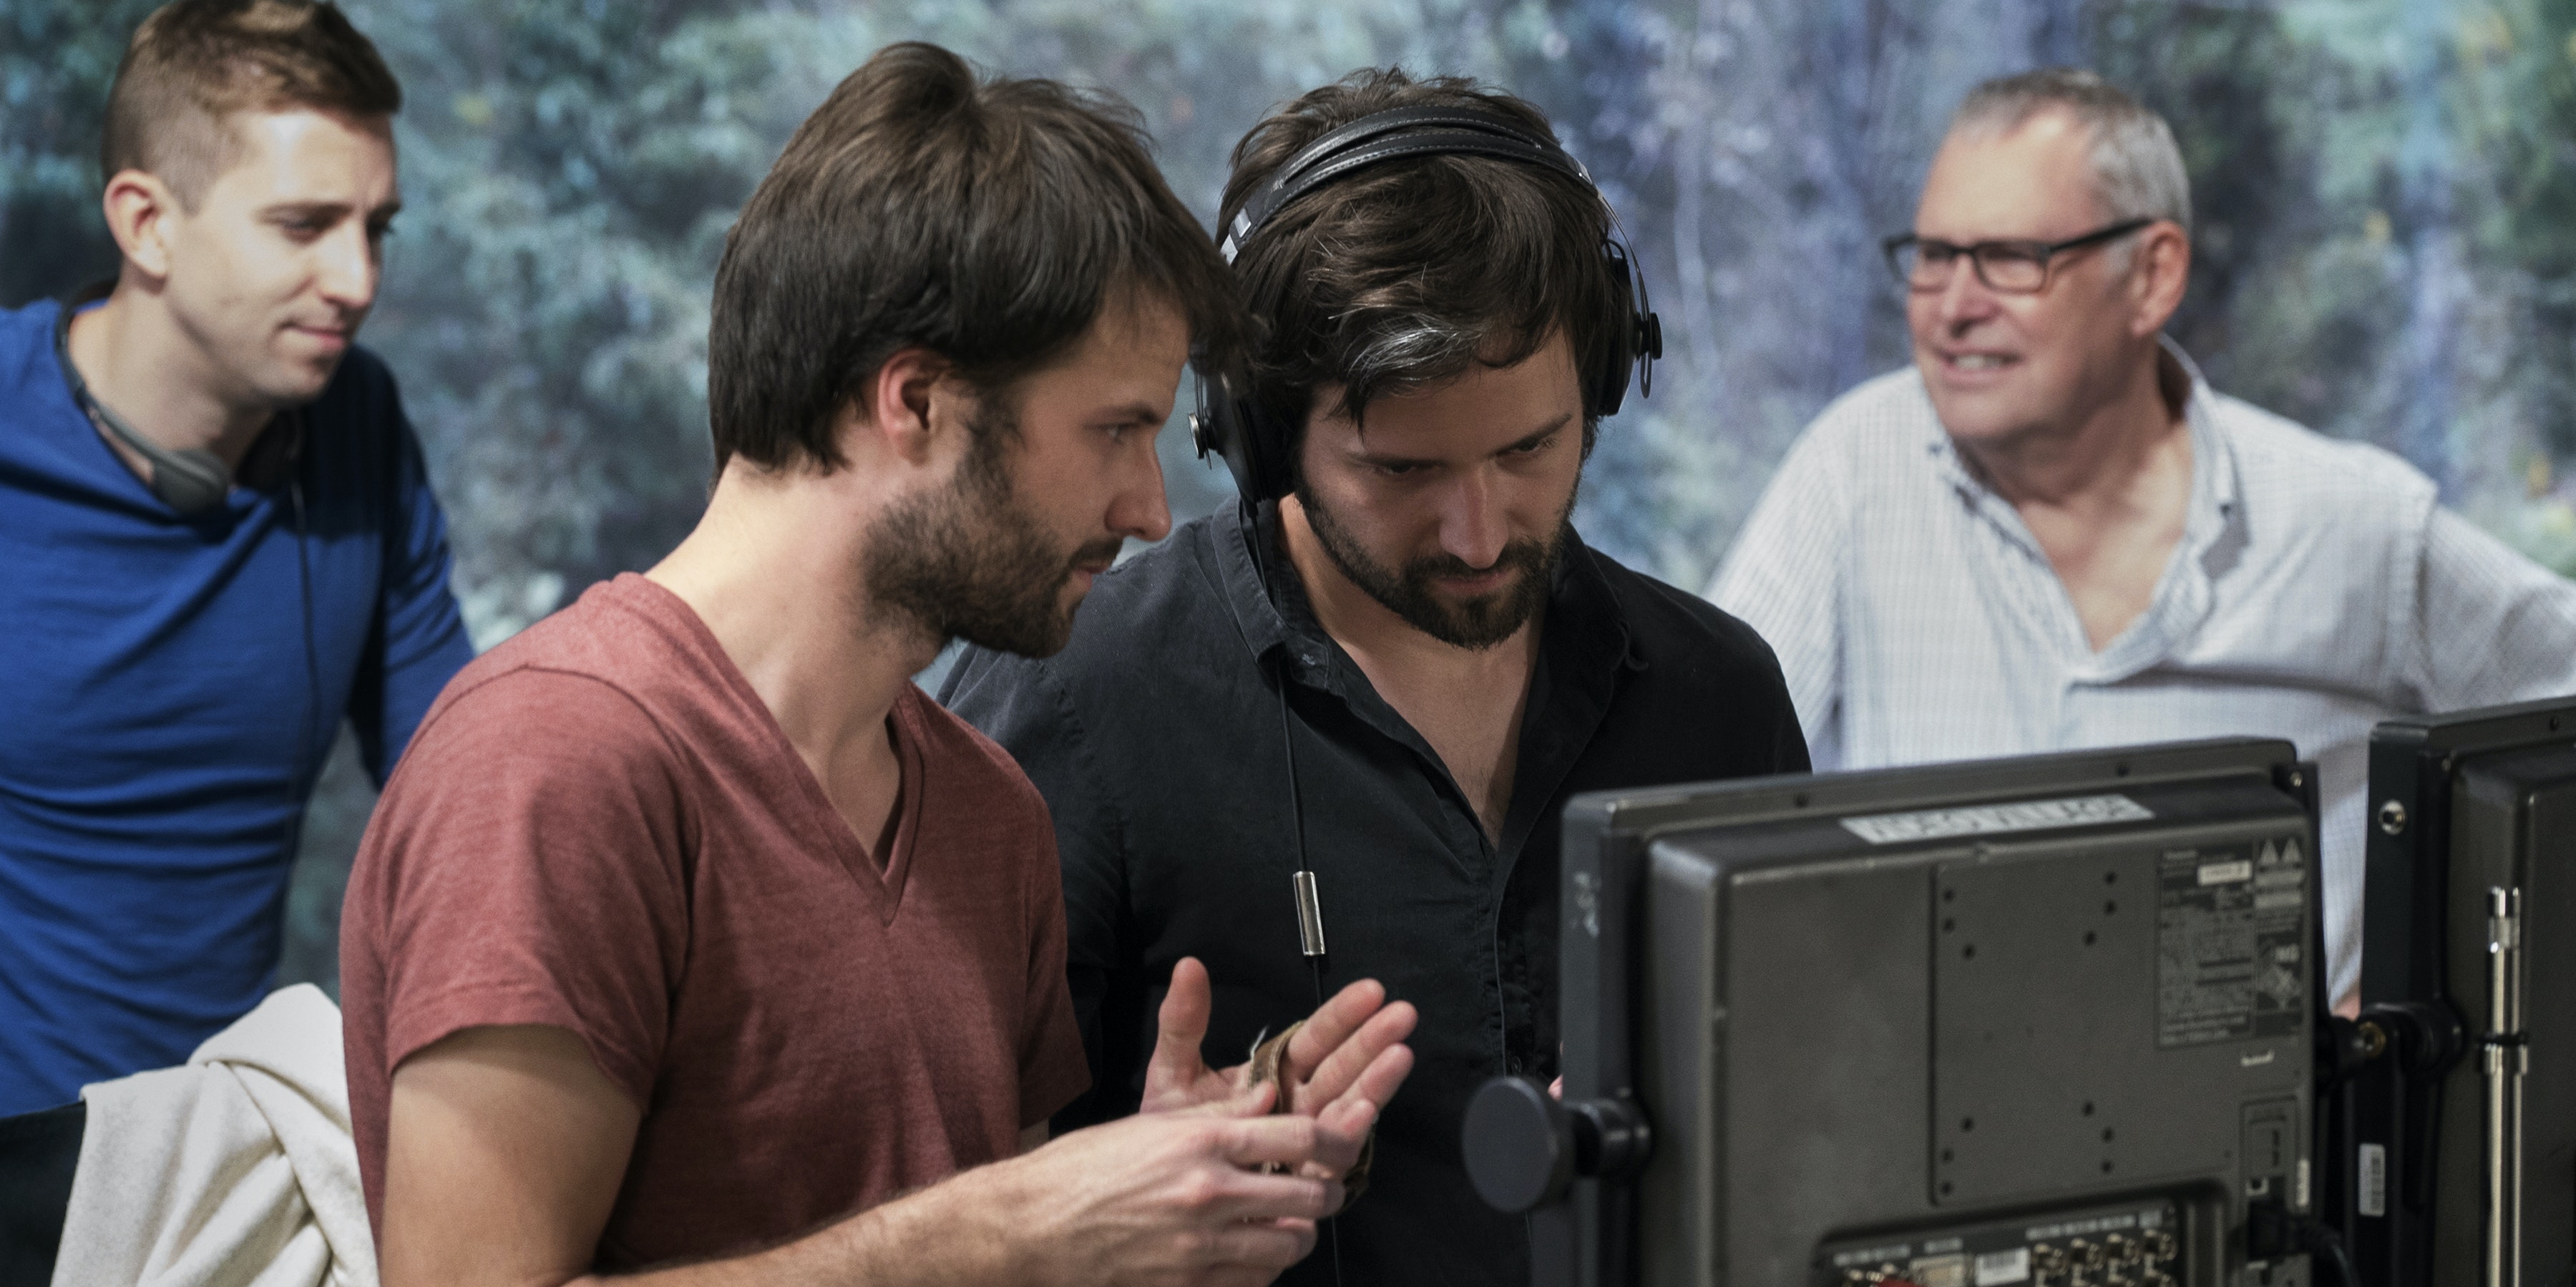 Revisiting the Duffer Brothers' Lost Movie, 'Hidden'